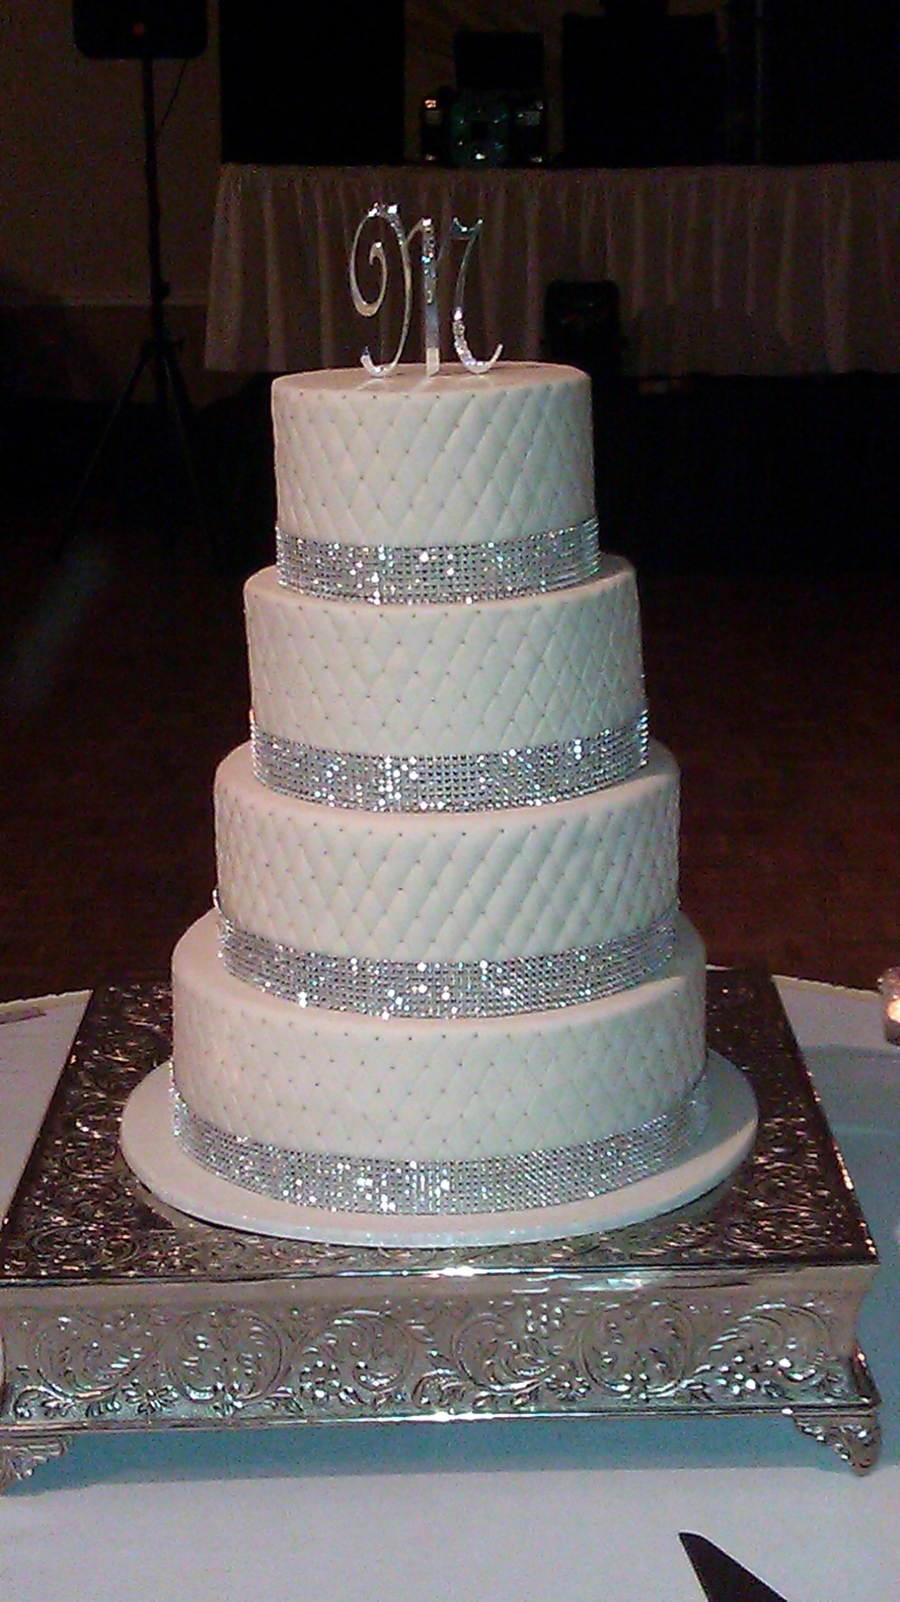 blingy wedding cakes blingy wedding cake cakecentral 11940